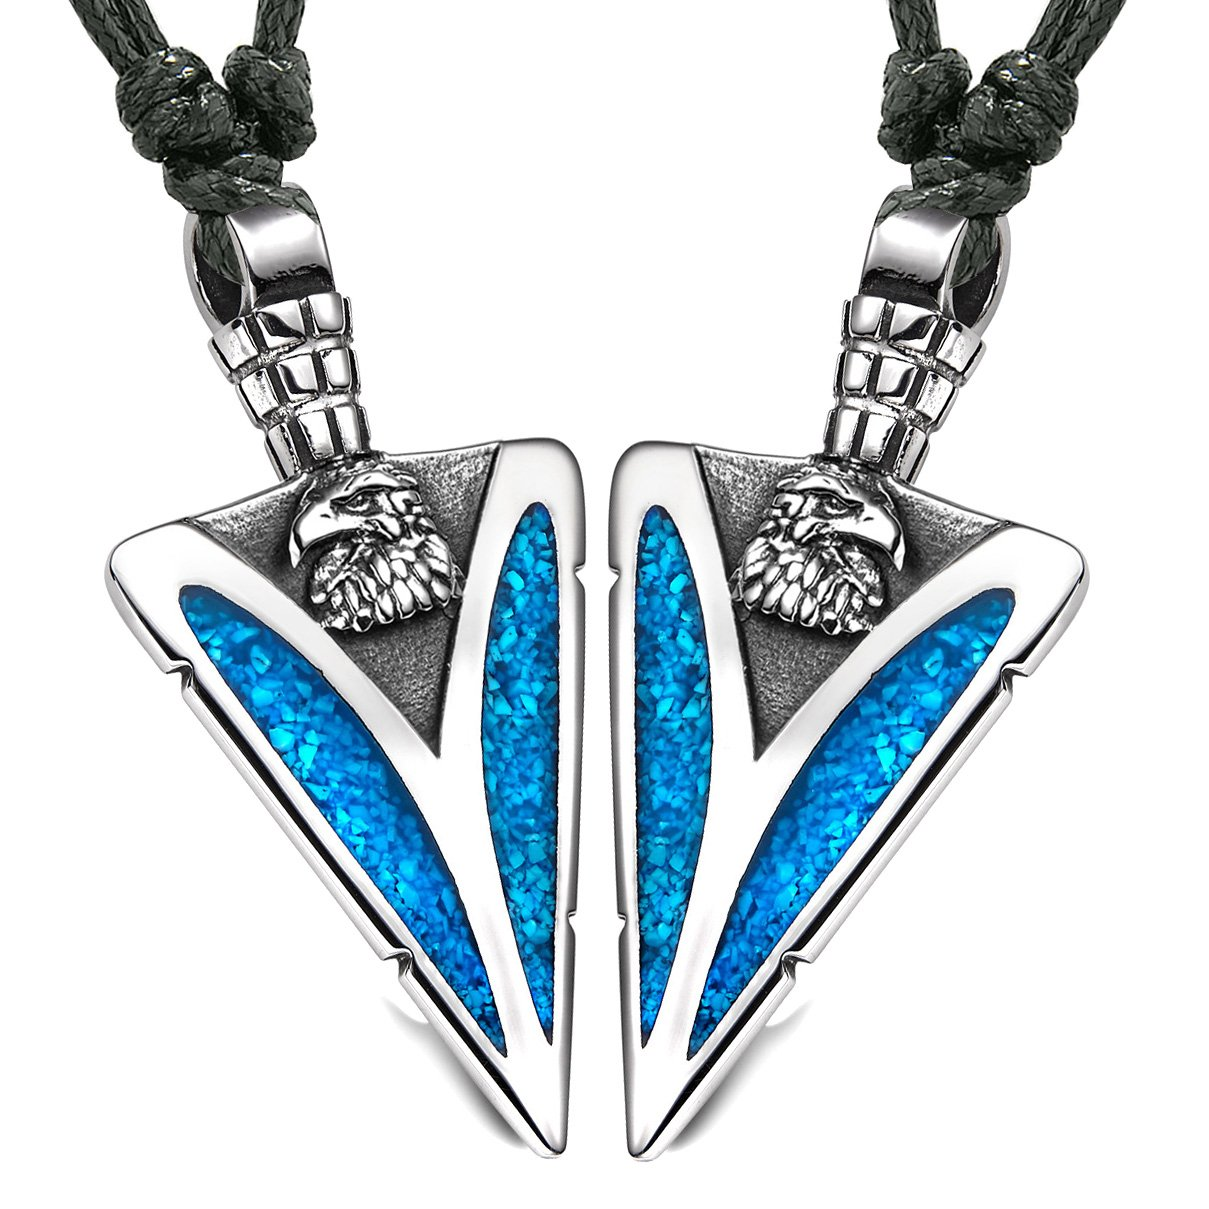 Arrowhead Wild American Eagle Head Love Couples BFF Set Amulets Simulated Turquoise Adjustable Necklaces